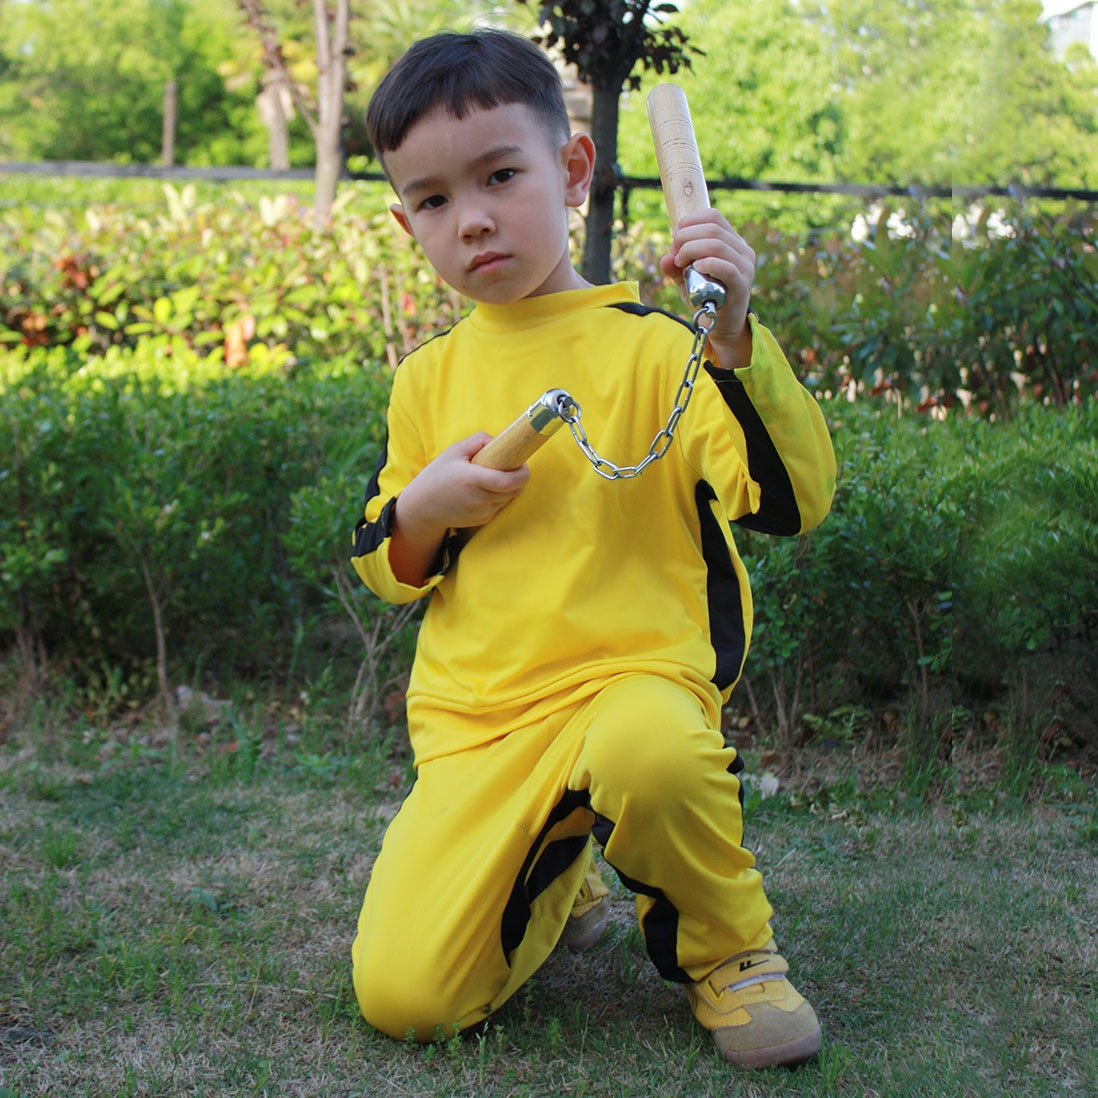 81dc50f37 Customized Child and Adult Bruce Lee Yellow Costume Game of Death - Jeet  Kune Do Uniform - Wing Chun & Jeet Kune Do - Martial Arts - Webmartial